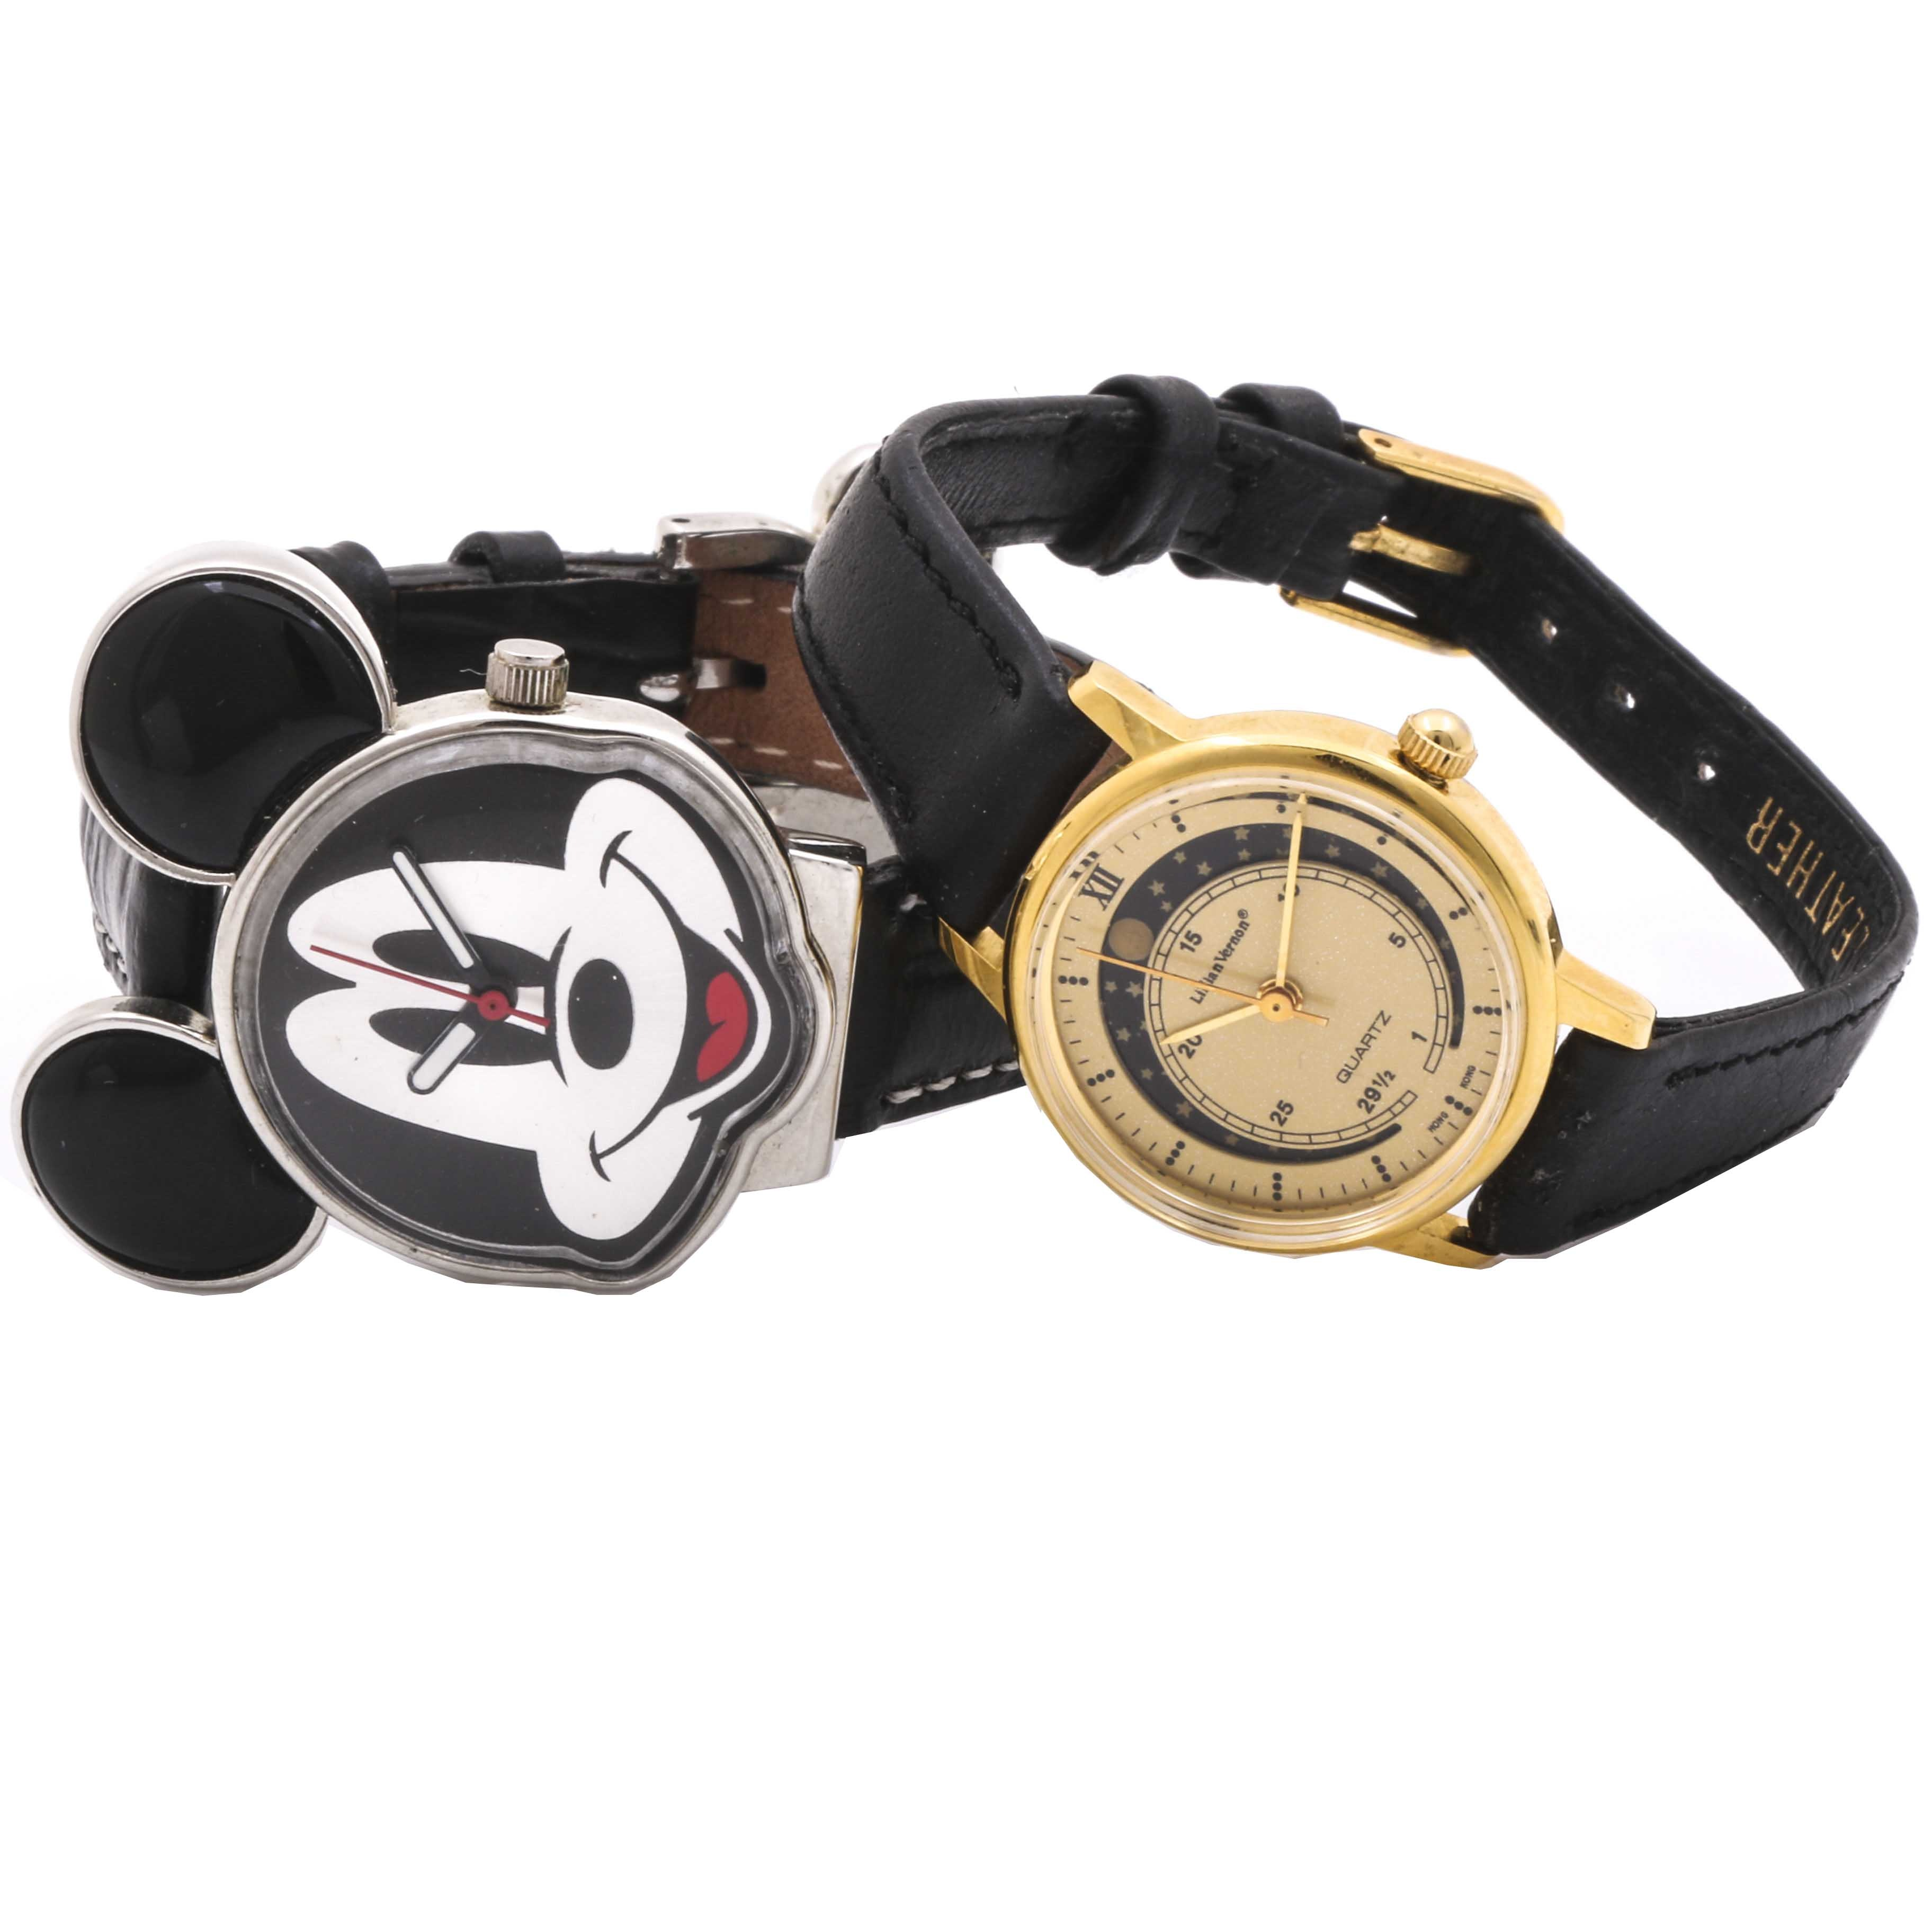 Mickey Mouse and Lillian Vernon Moon Phase Wristwatches